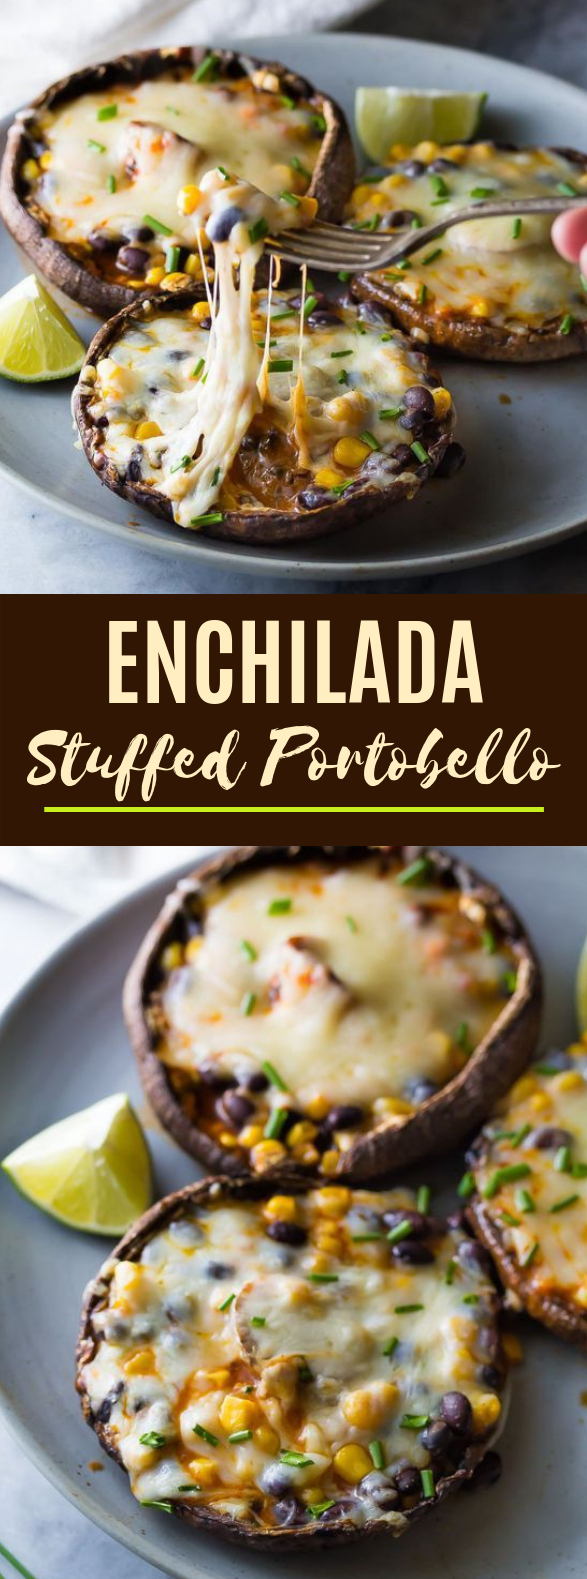 Enchilada Stuffed Grilled Portobello Mushrooms #dinner #vegetarian